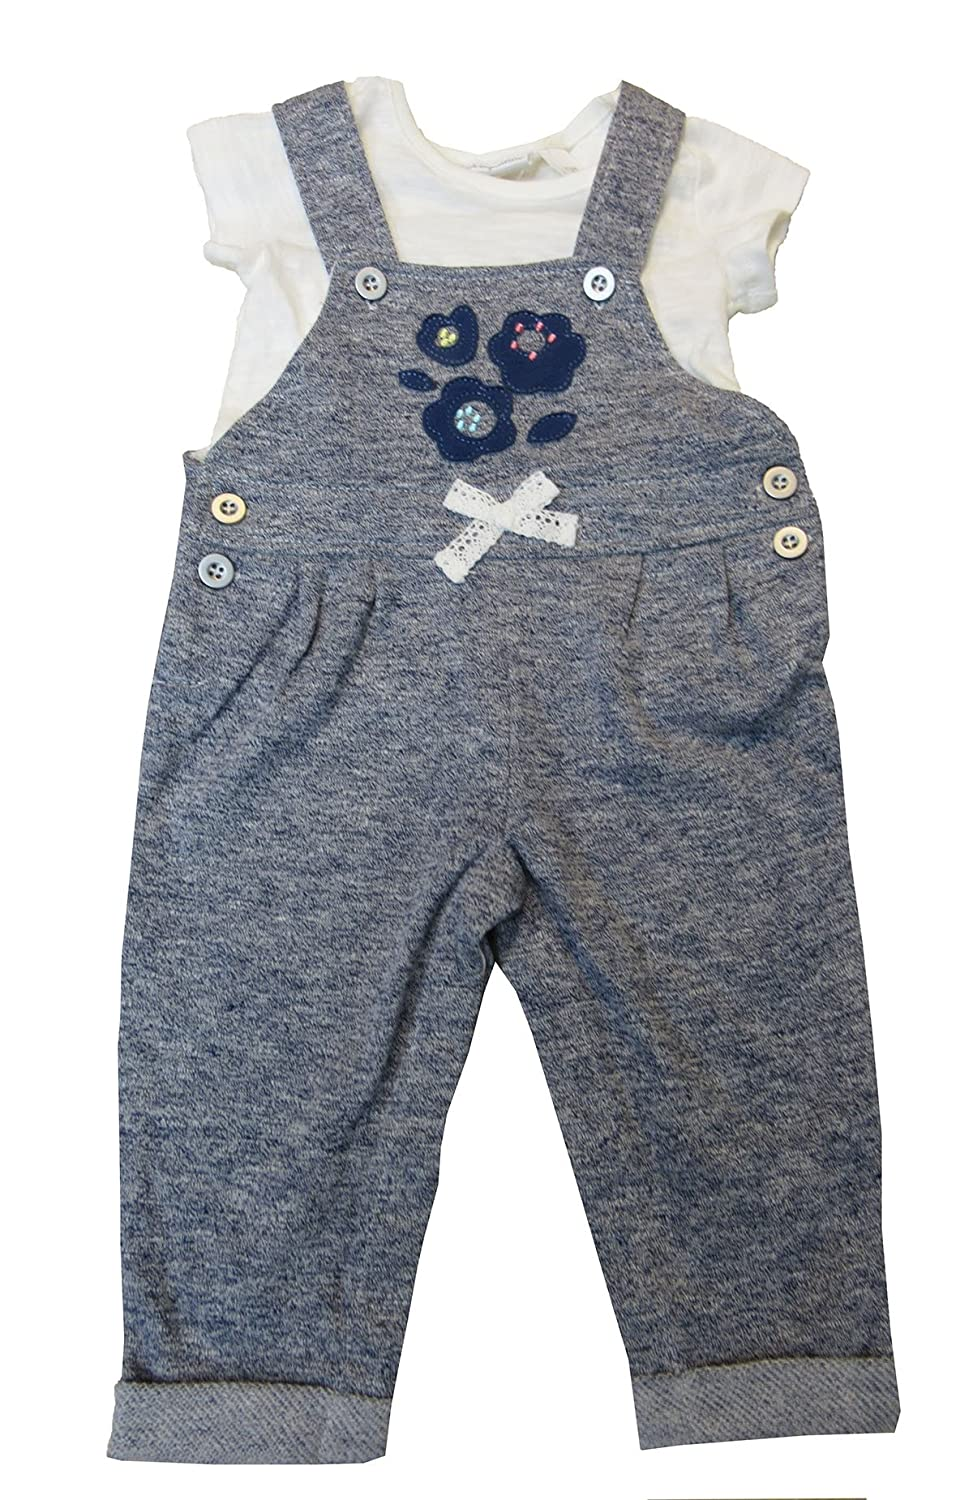 806e0620c Amazon.com: First Impressions Baby Girls' 2-Pc. T-Shirt & Marled Overall  Set, Shark Eye 6-9 Months: Clothing